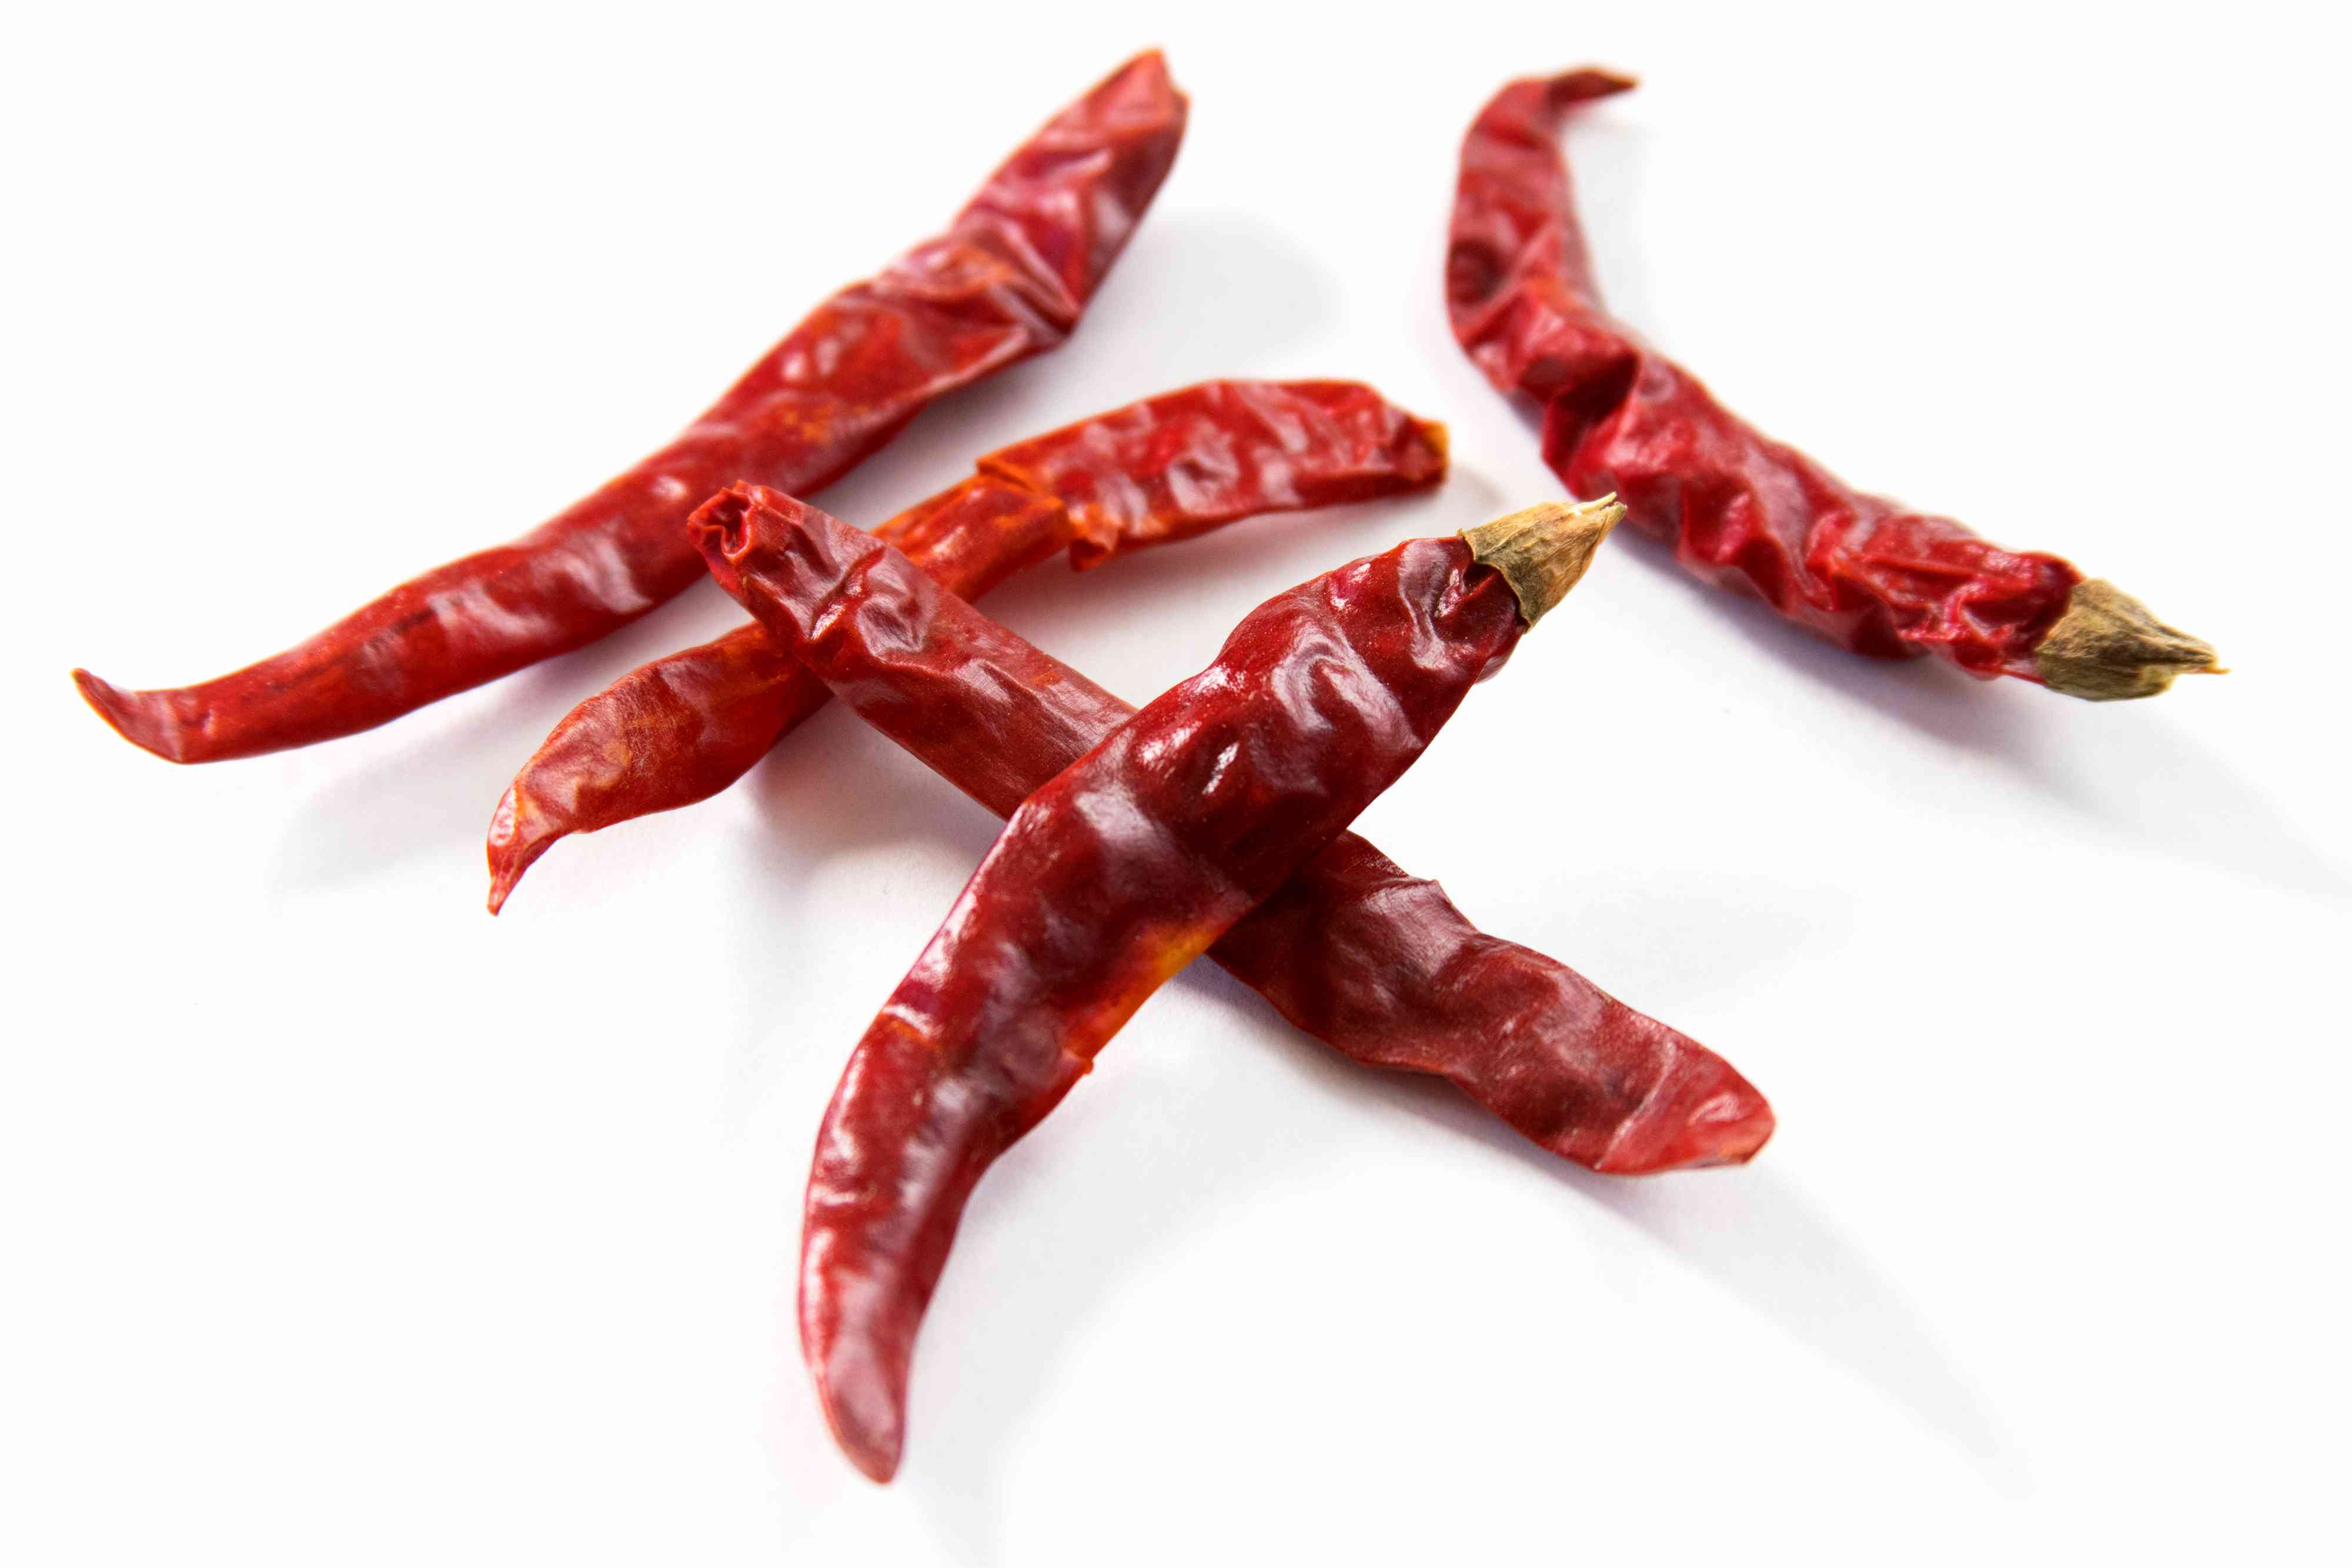 Chile de Arbol Dried Chile Peppers